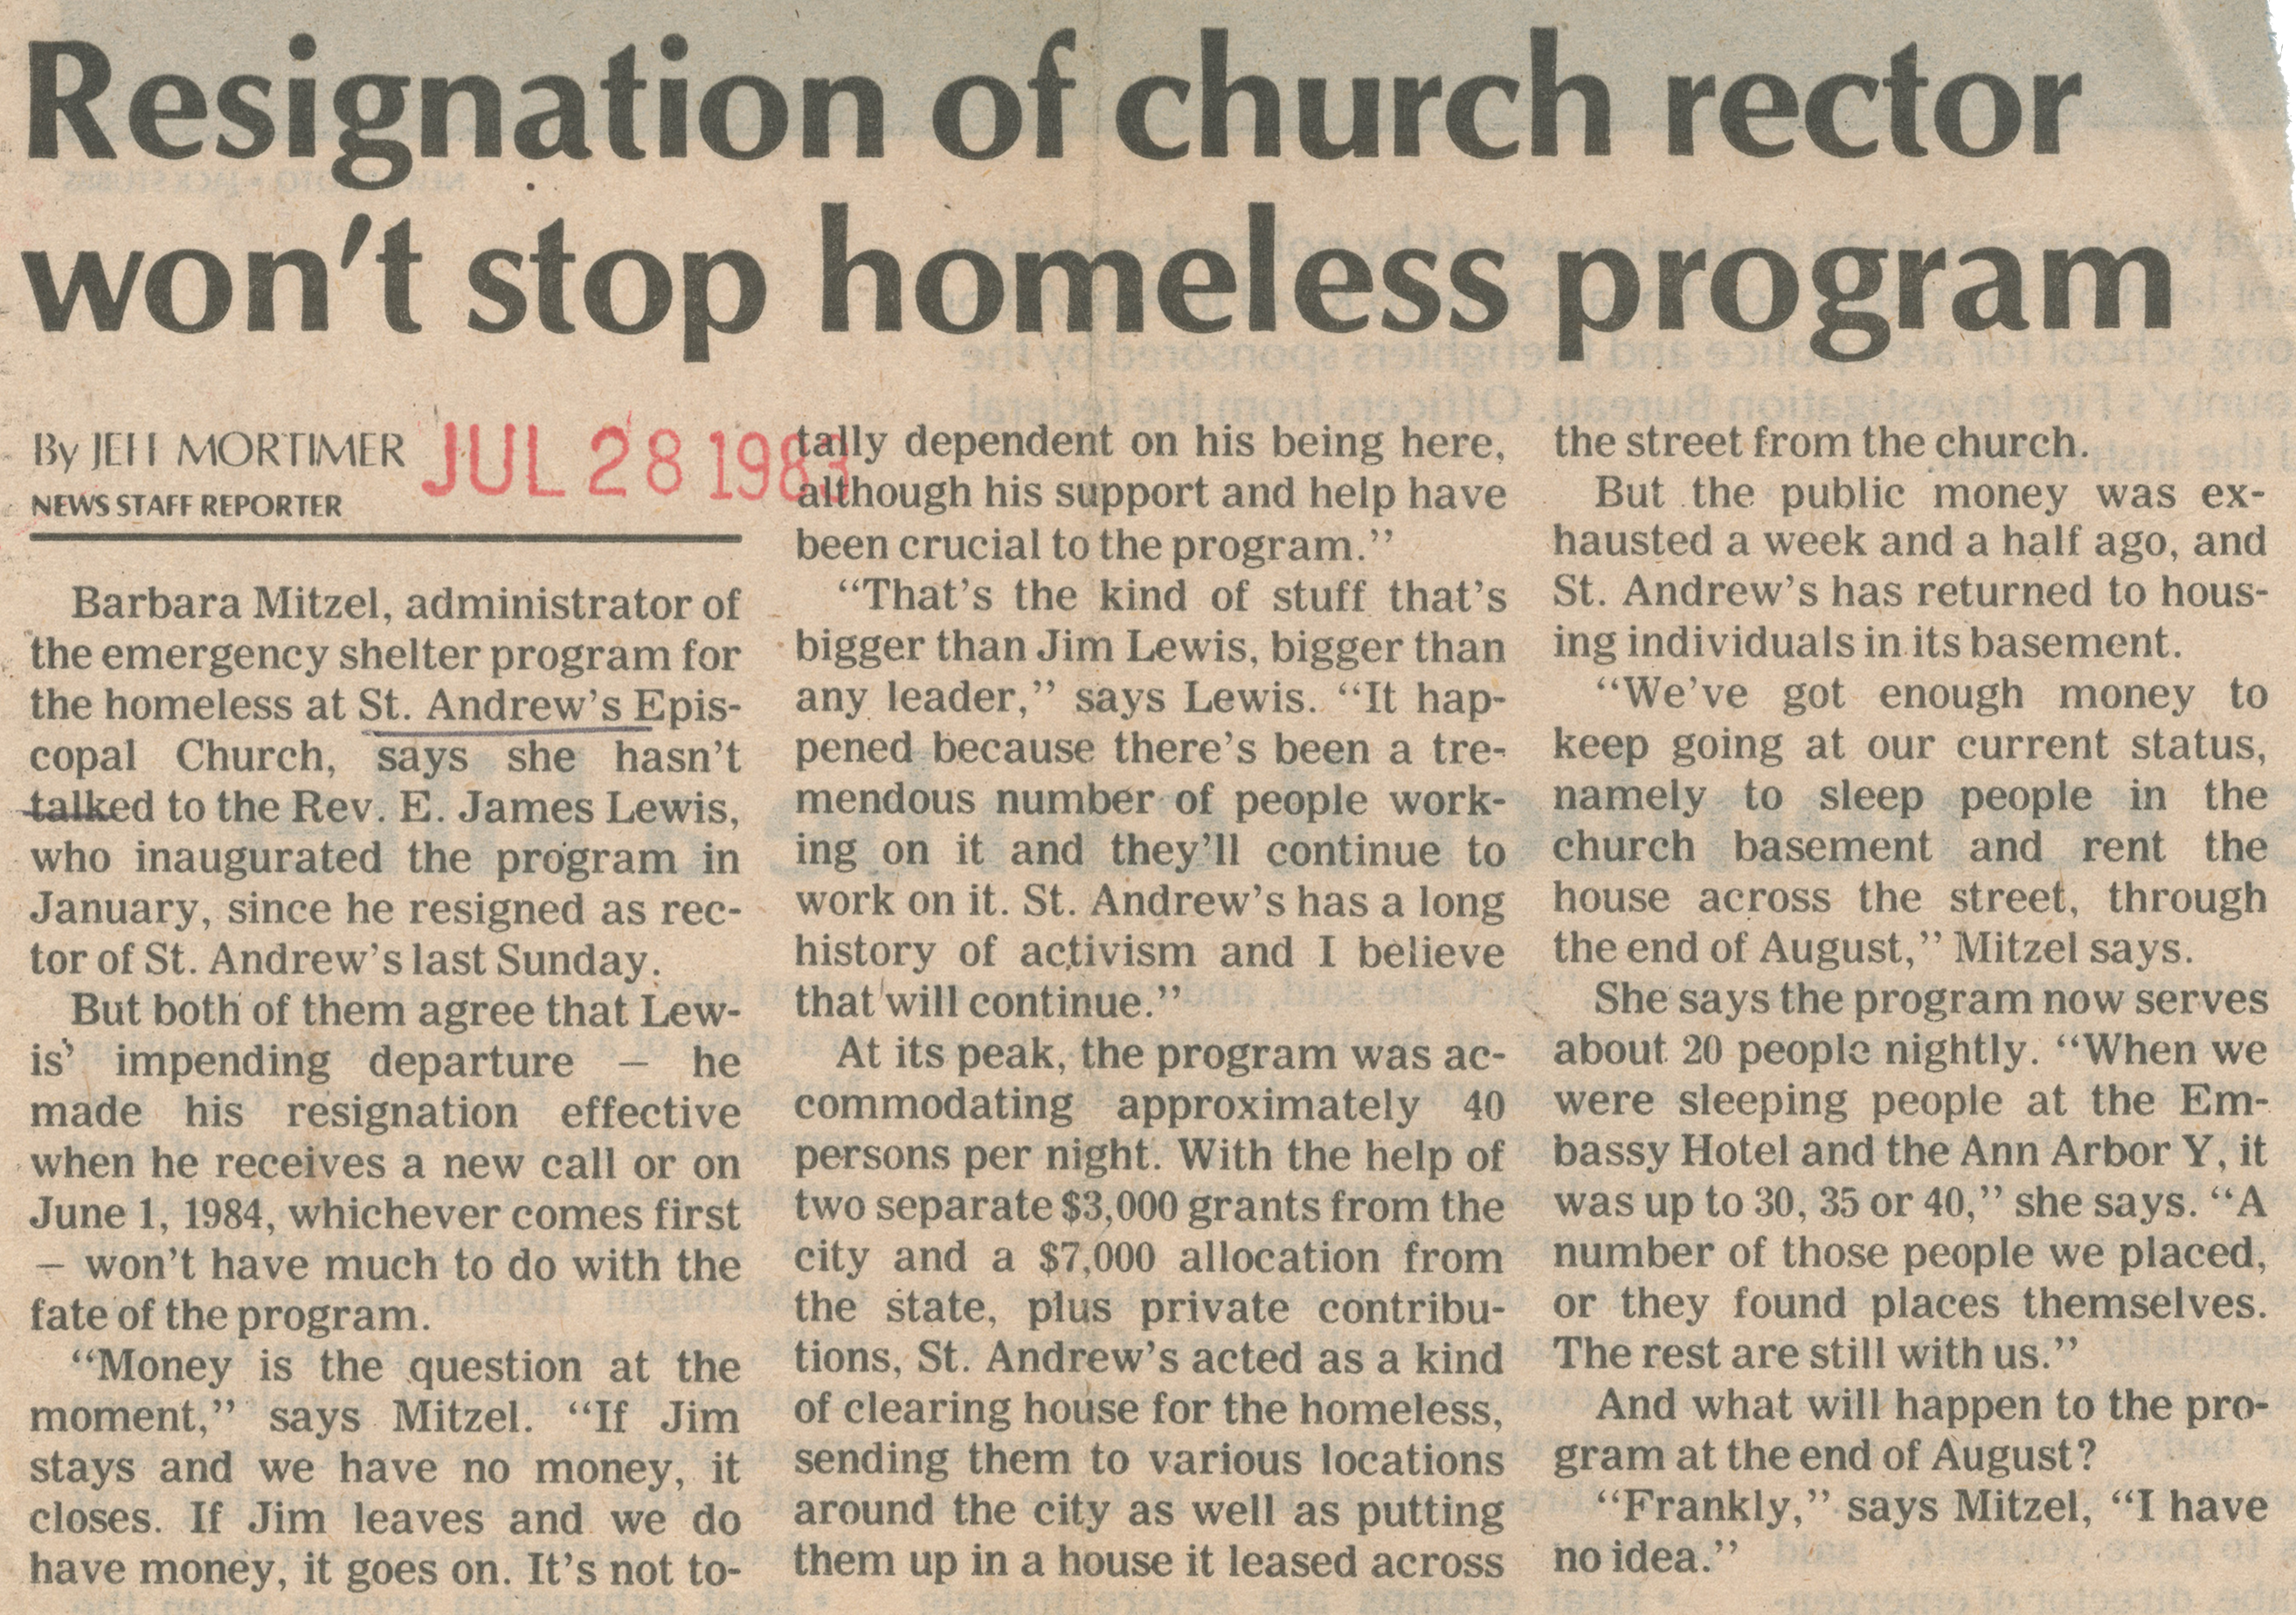 Resignation of Church Rector Won't Stop Homeless Program image